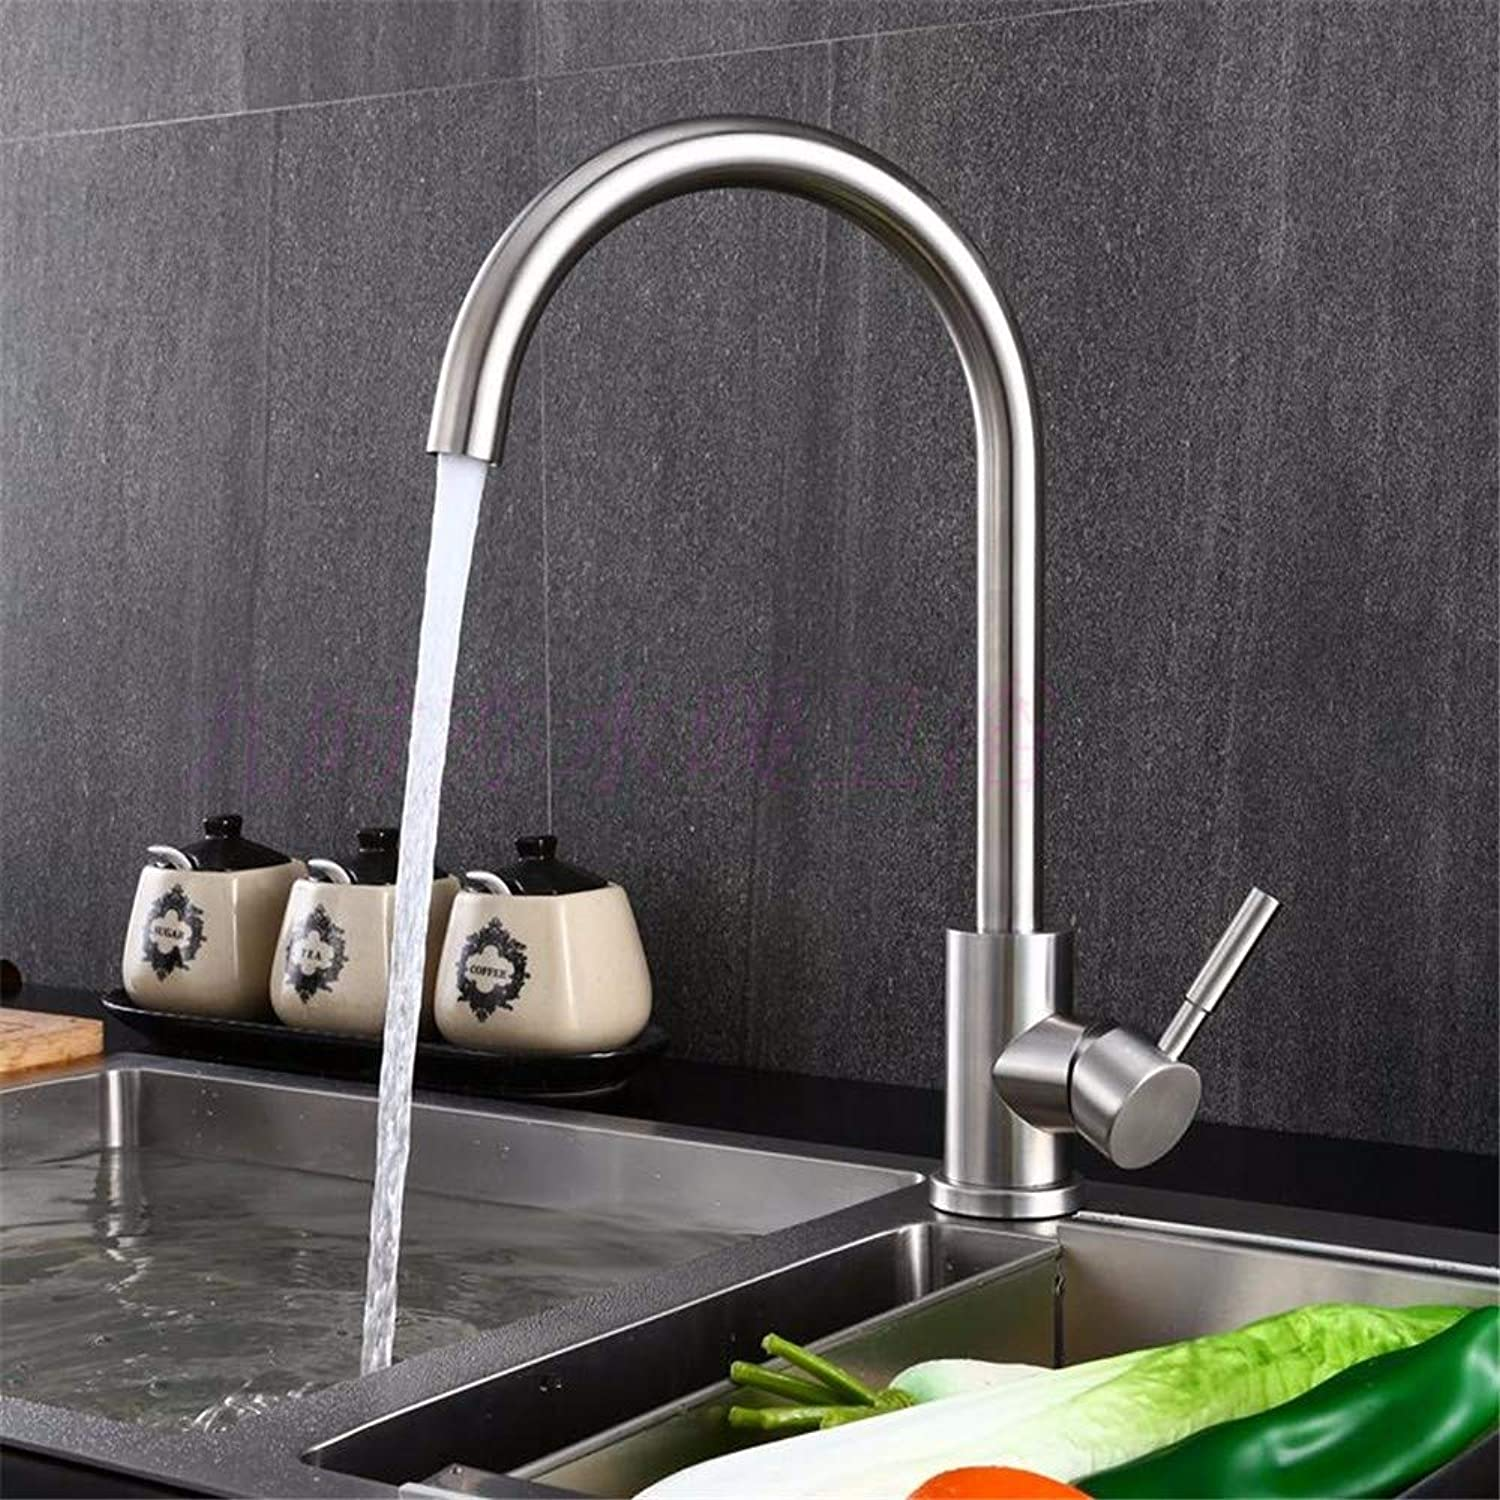 Pyty123-Faucet Faucet Kitchen Hot And Cold Sink Stainless Steel Dual-Use redatable Drinking Faucet, A